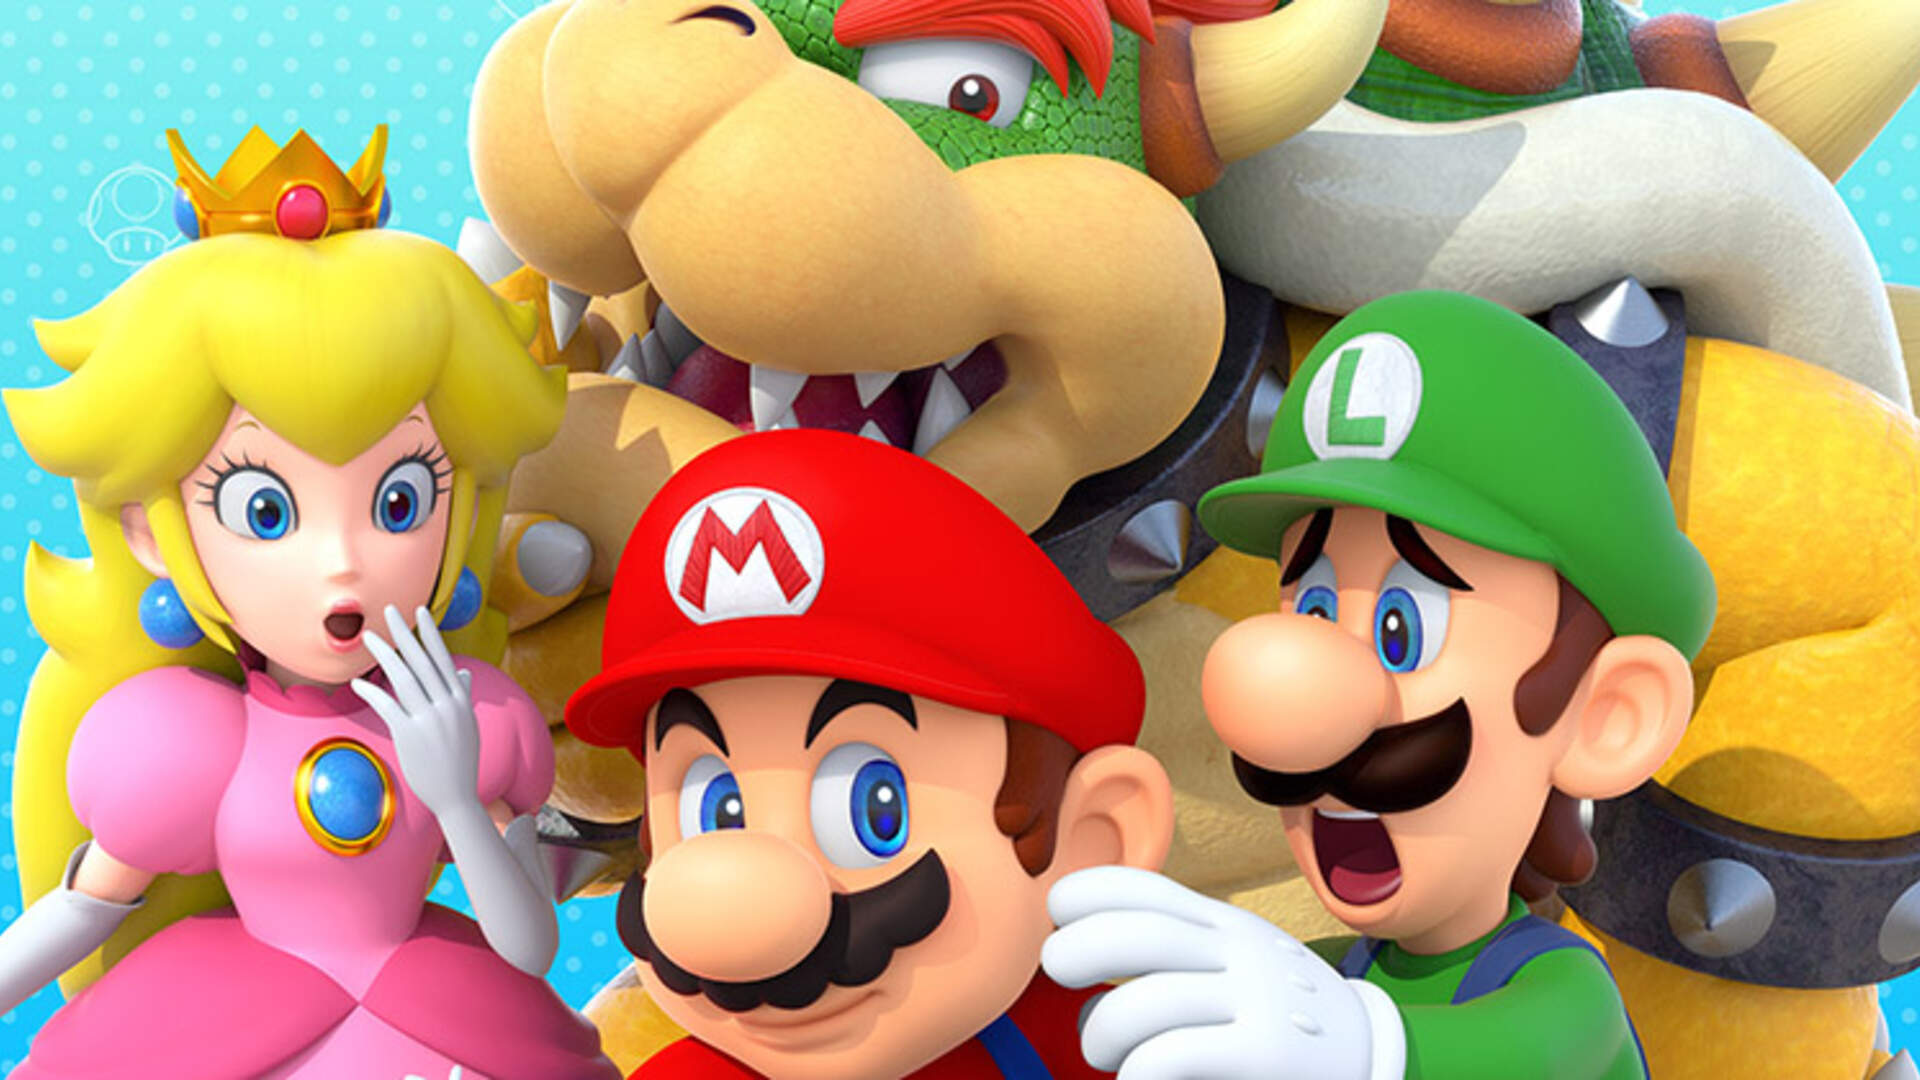 Mario Party 10 Wii U Review: An Expert Opinion